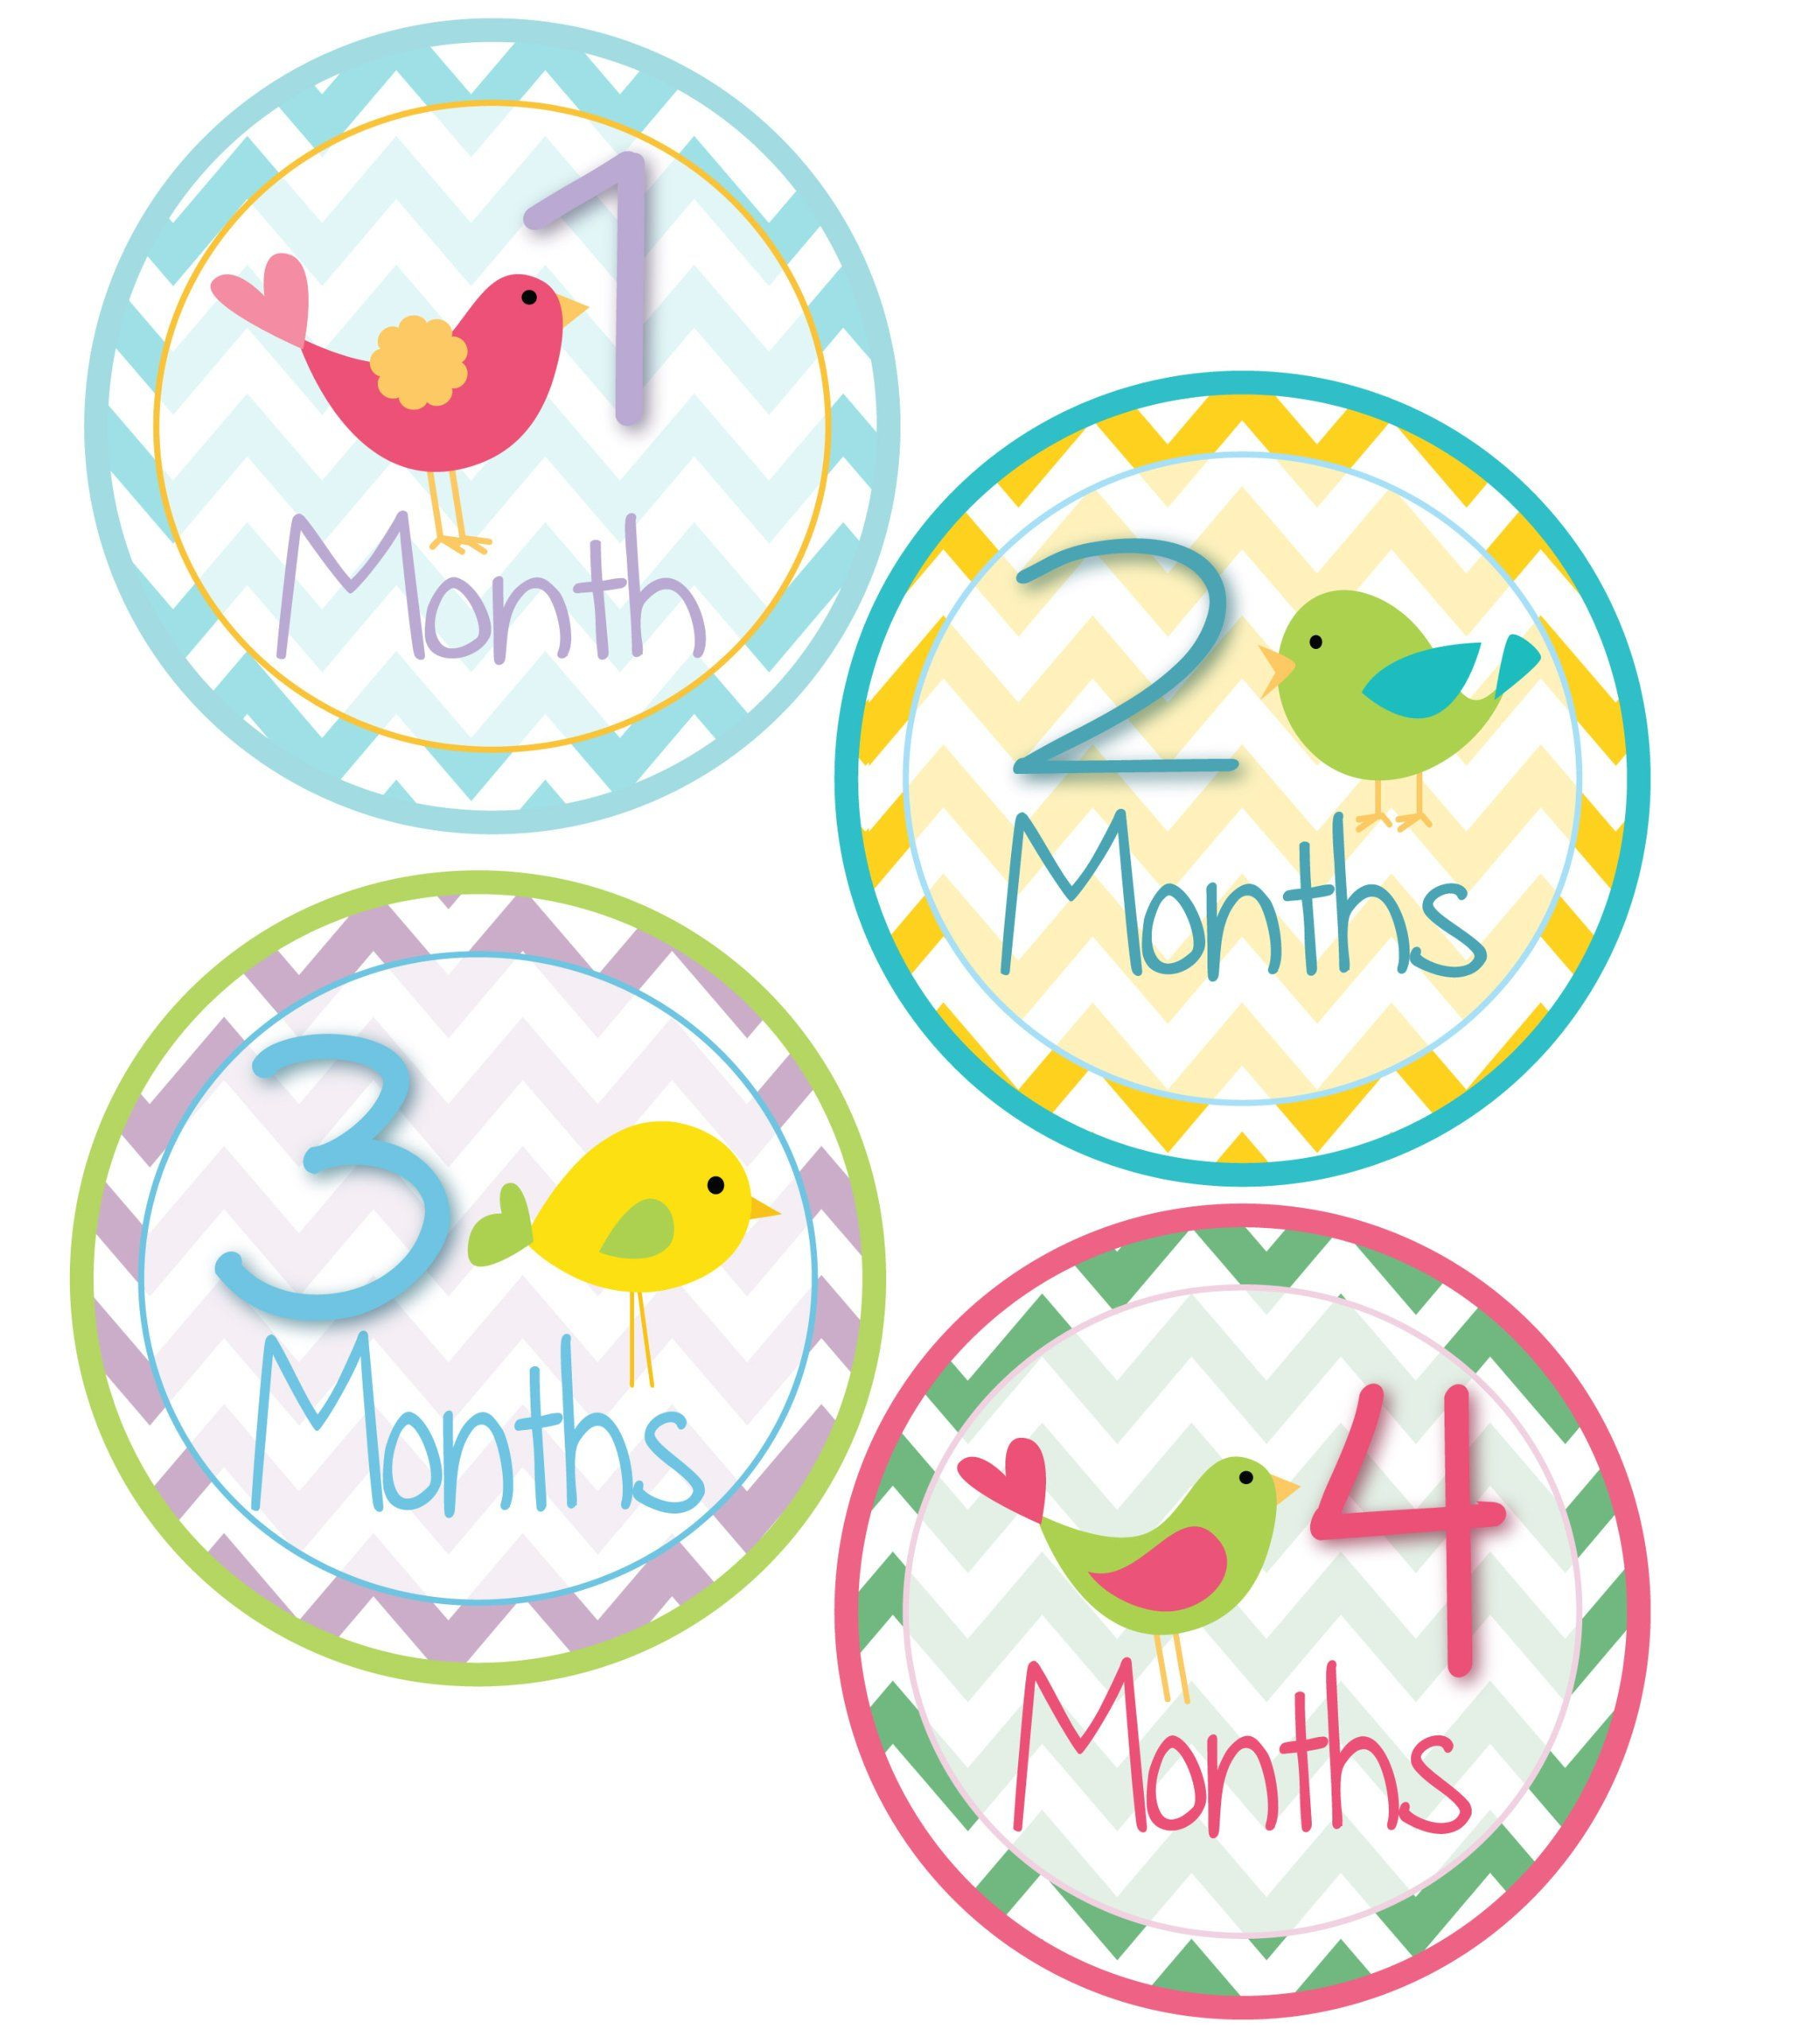 Happy 7 Months Baby Girl Quotes Amazon Wall Décor Baby